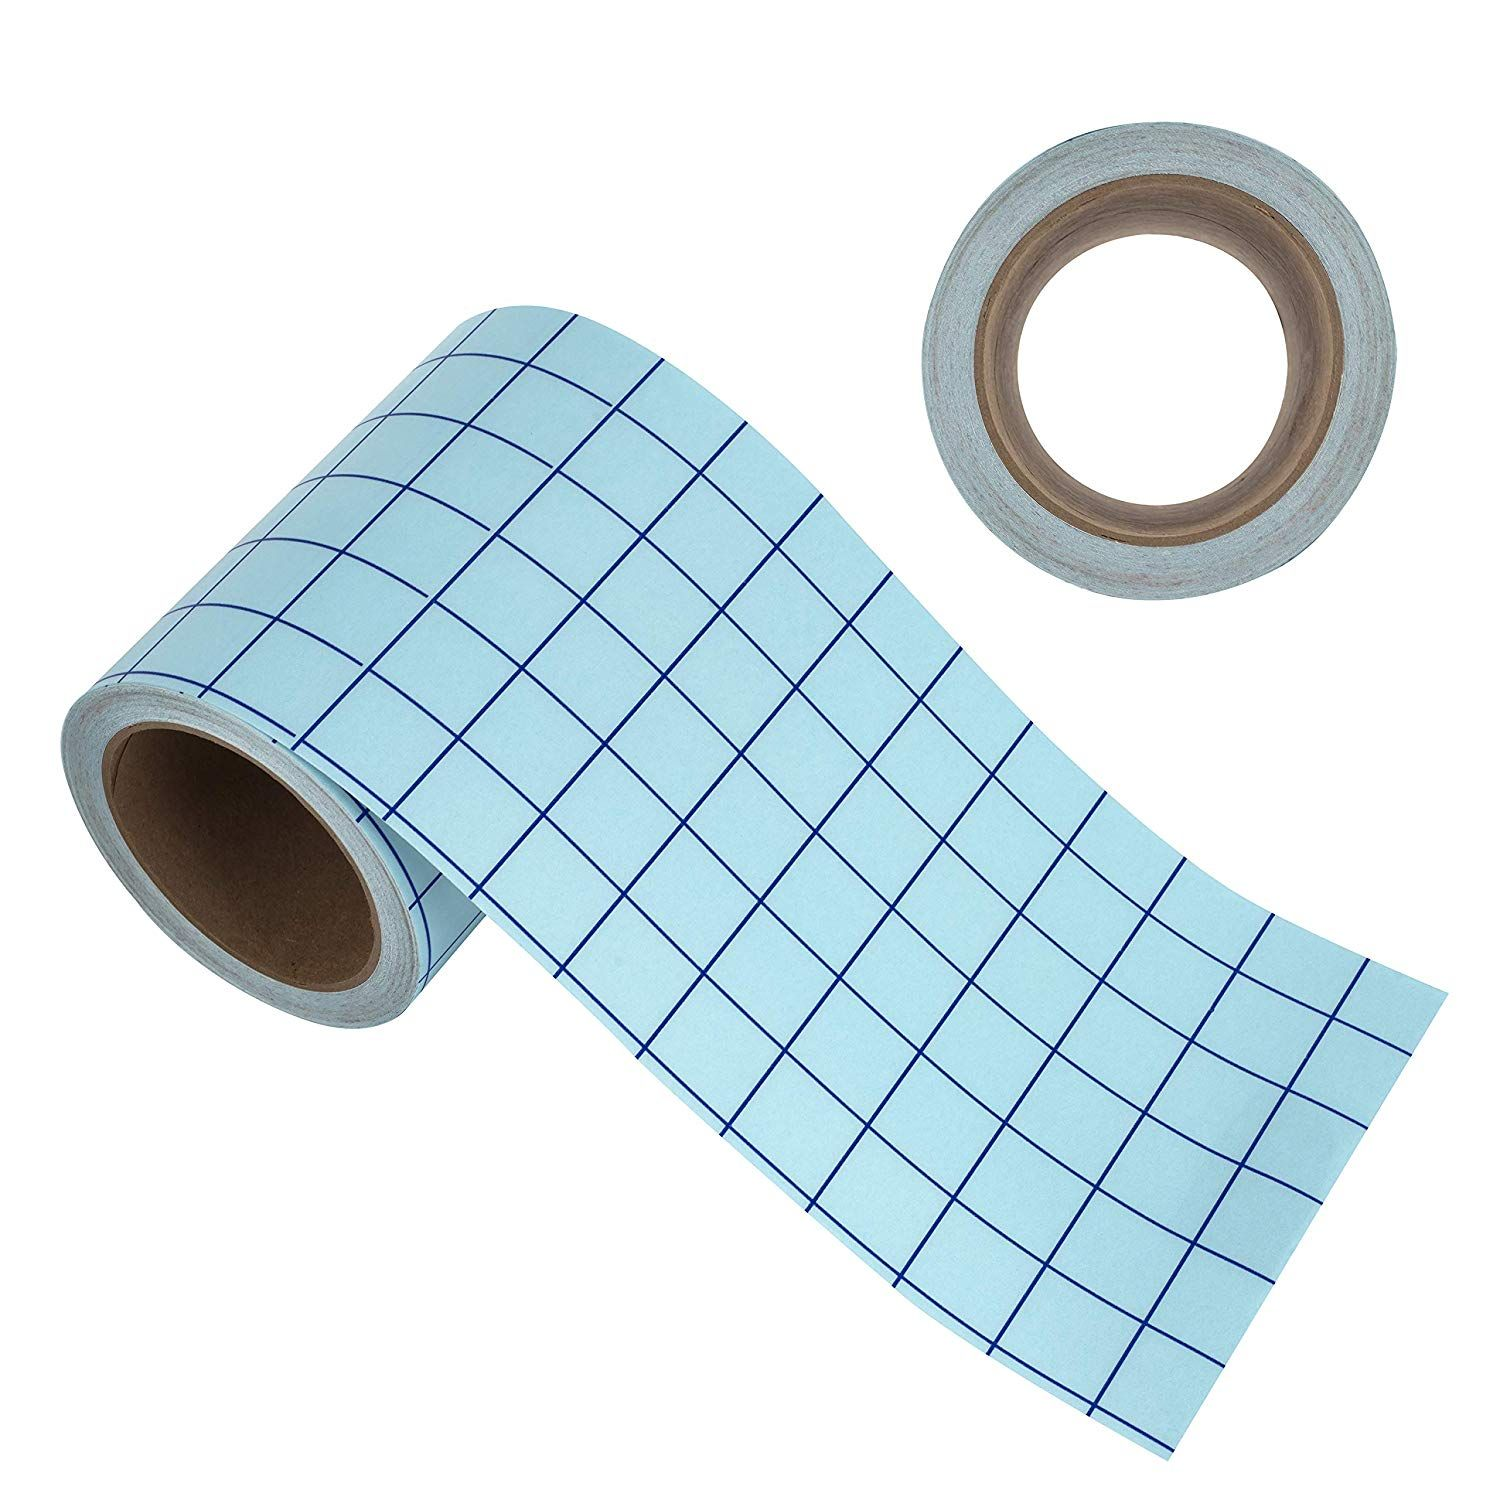 Angel Crafts Transfer Paper Tape Craft Transfer Tape For Vinyl Application With Blue Grid Lines Self Adhes Paper Tape Transfer Paper Transfer Tape For Vinyl